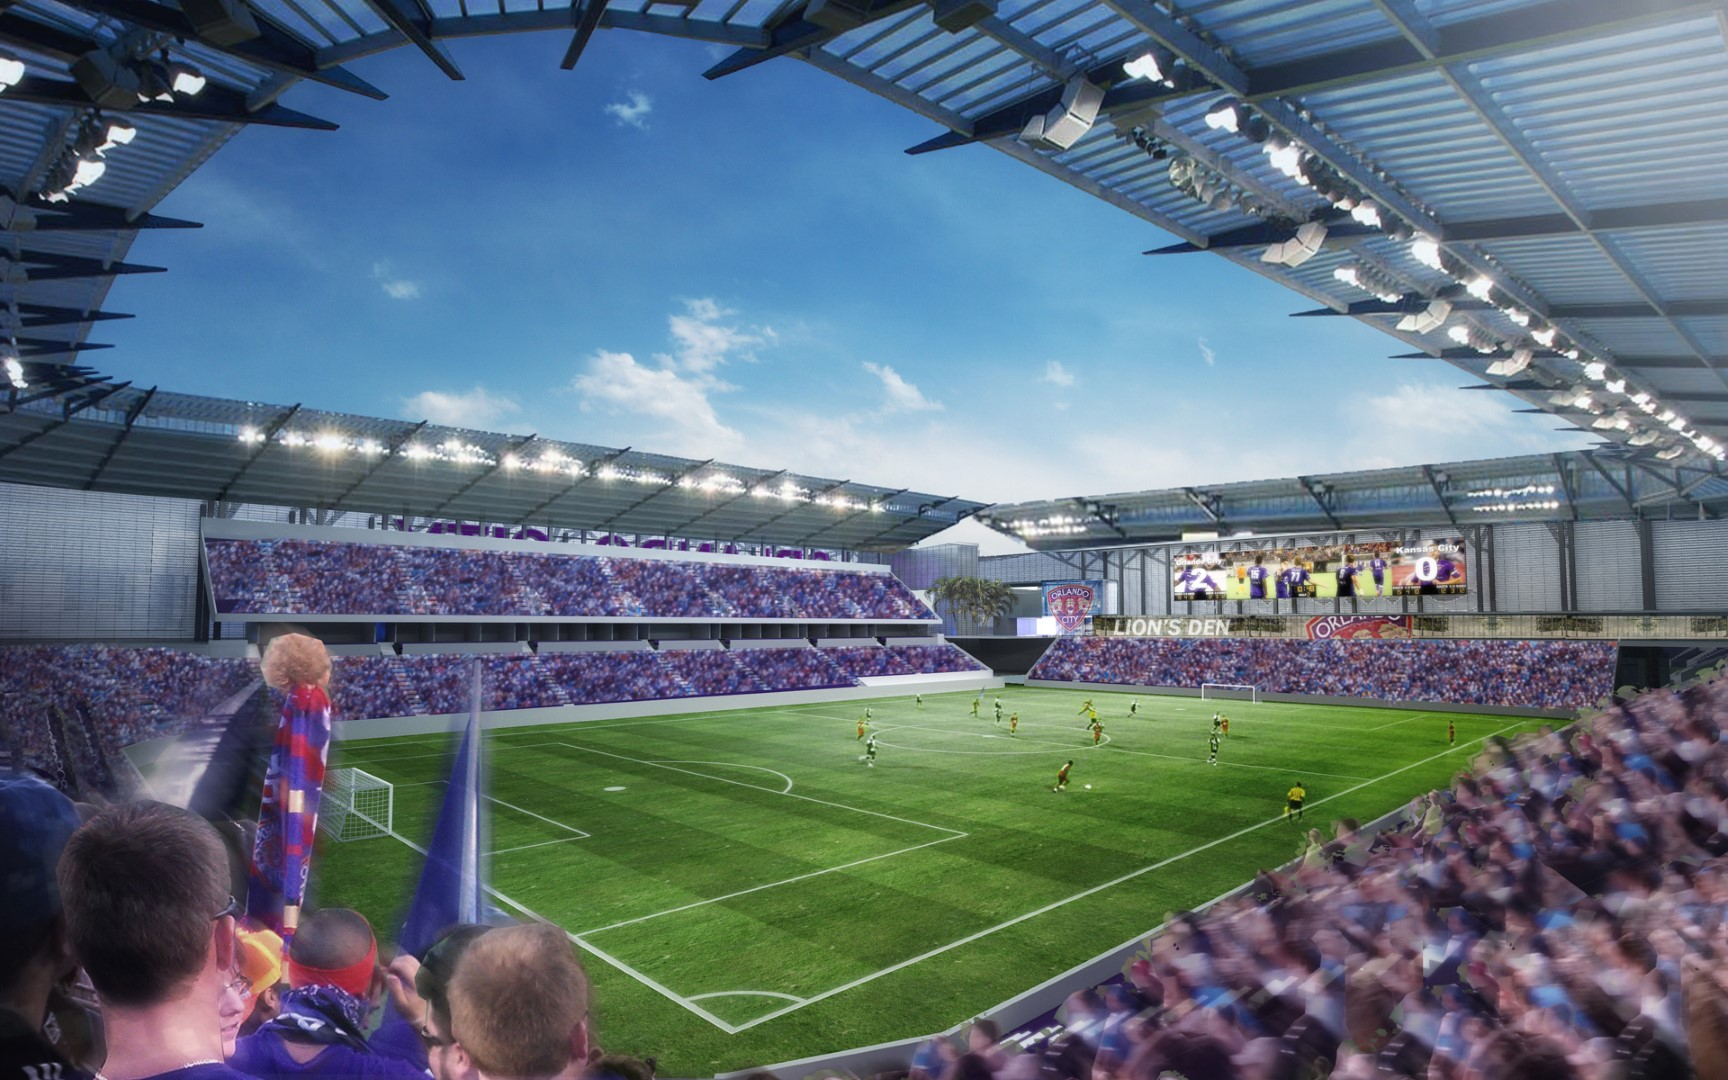 Soccer Team Says Orlando Stadium To Be Completed In 12 To 14 Months